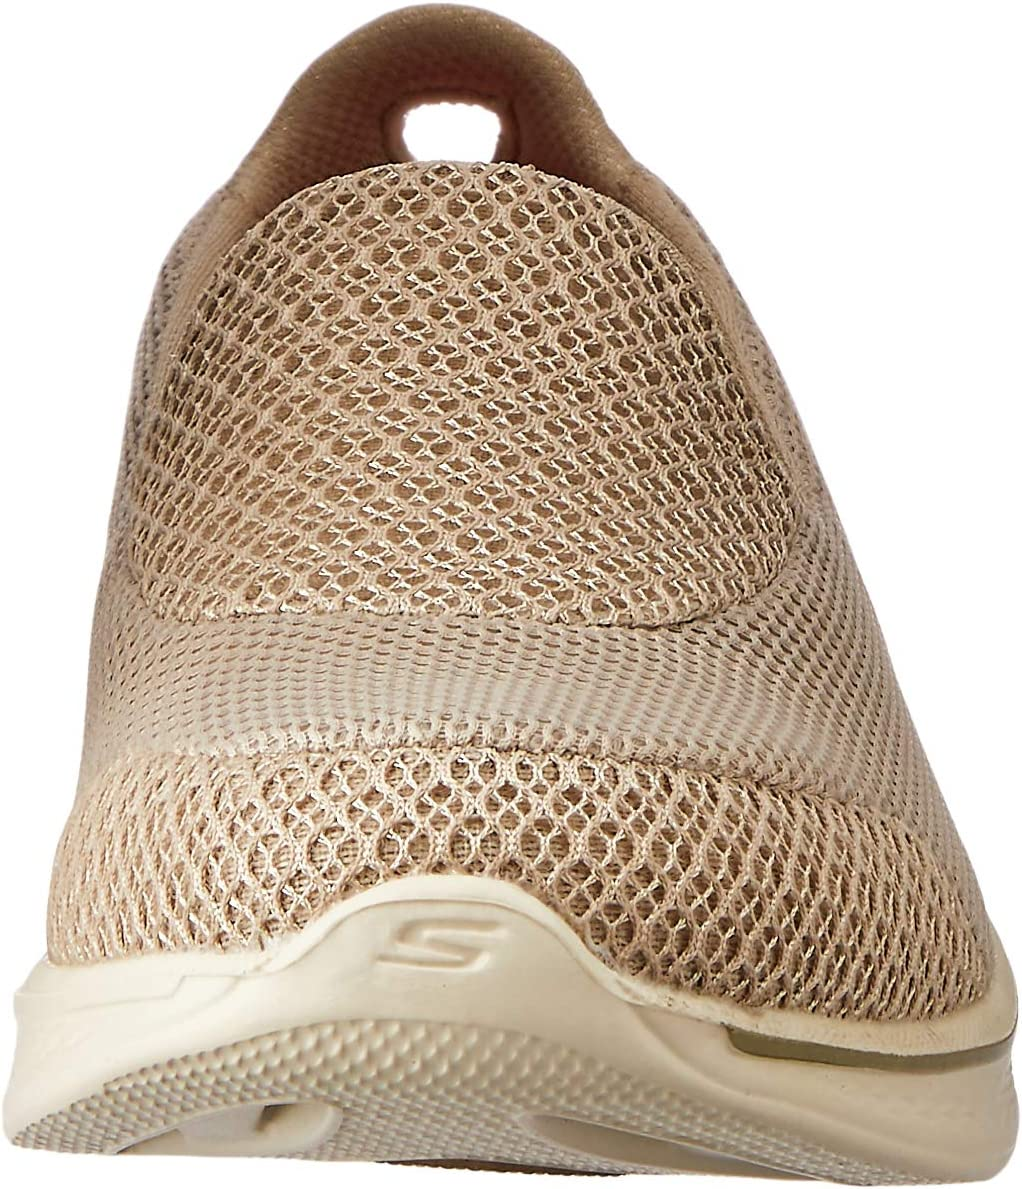 Skechers Go Walk 4 Propel - Women's Walking Shoe Taupe